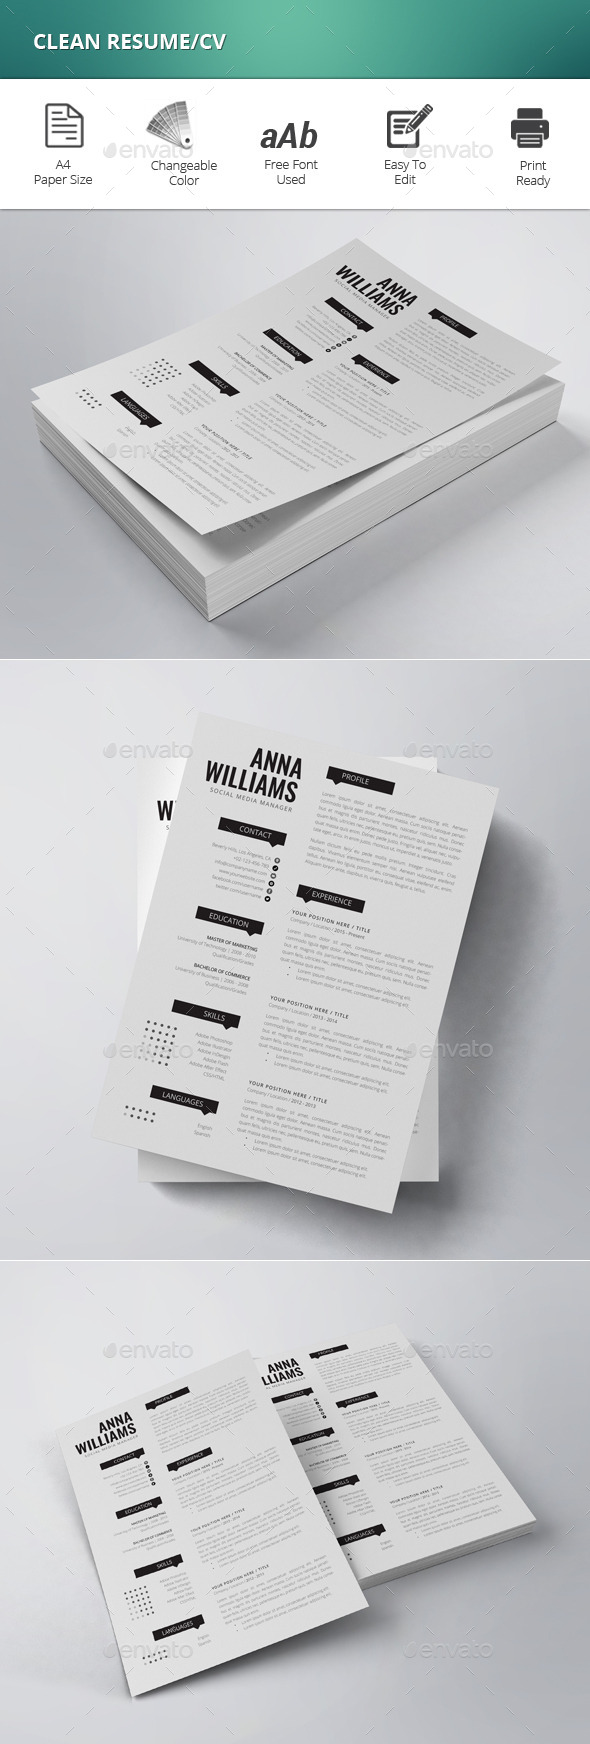 GraphicRiver Clean Resume CV 11965057